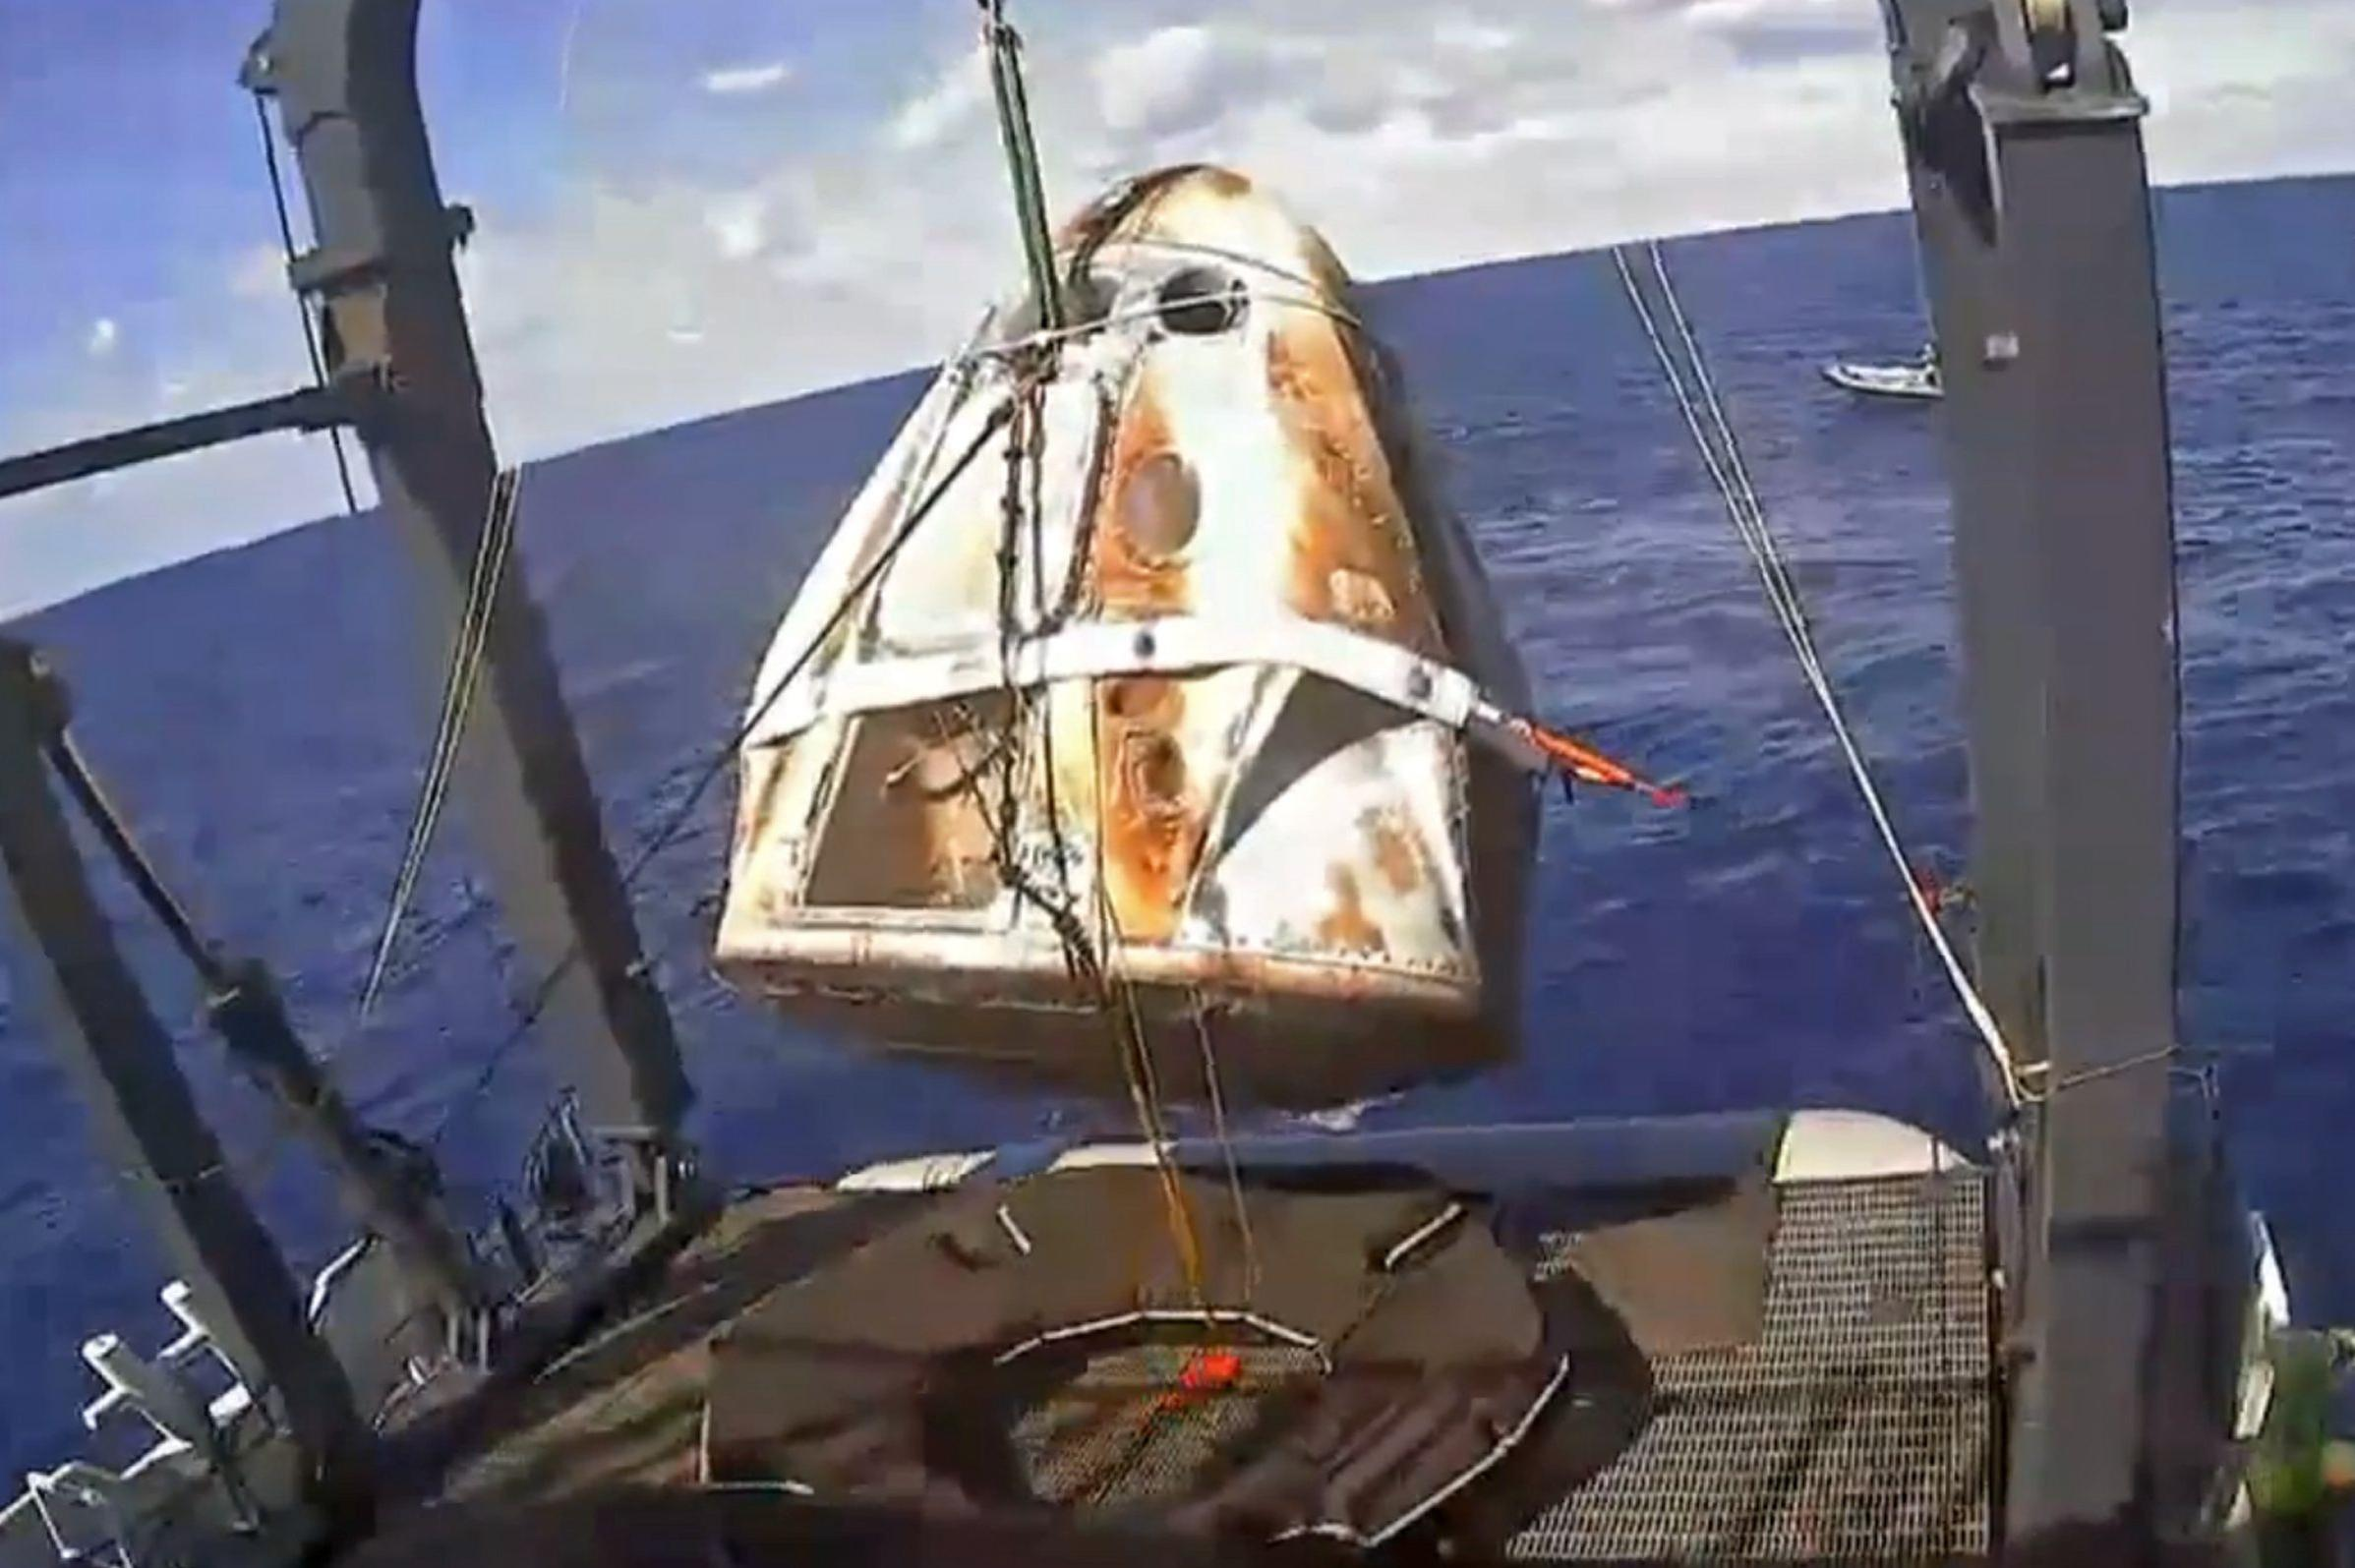 Elon Musk's SpaceX capsule lands successfully in crucial